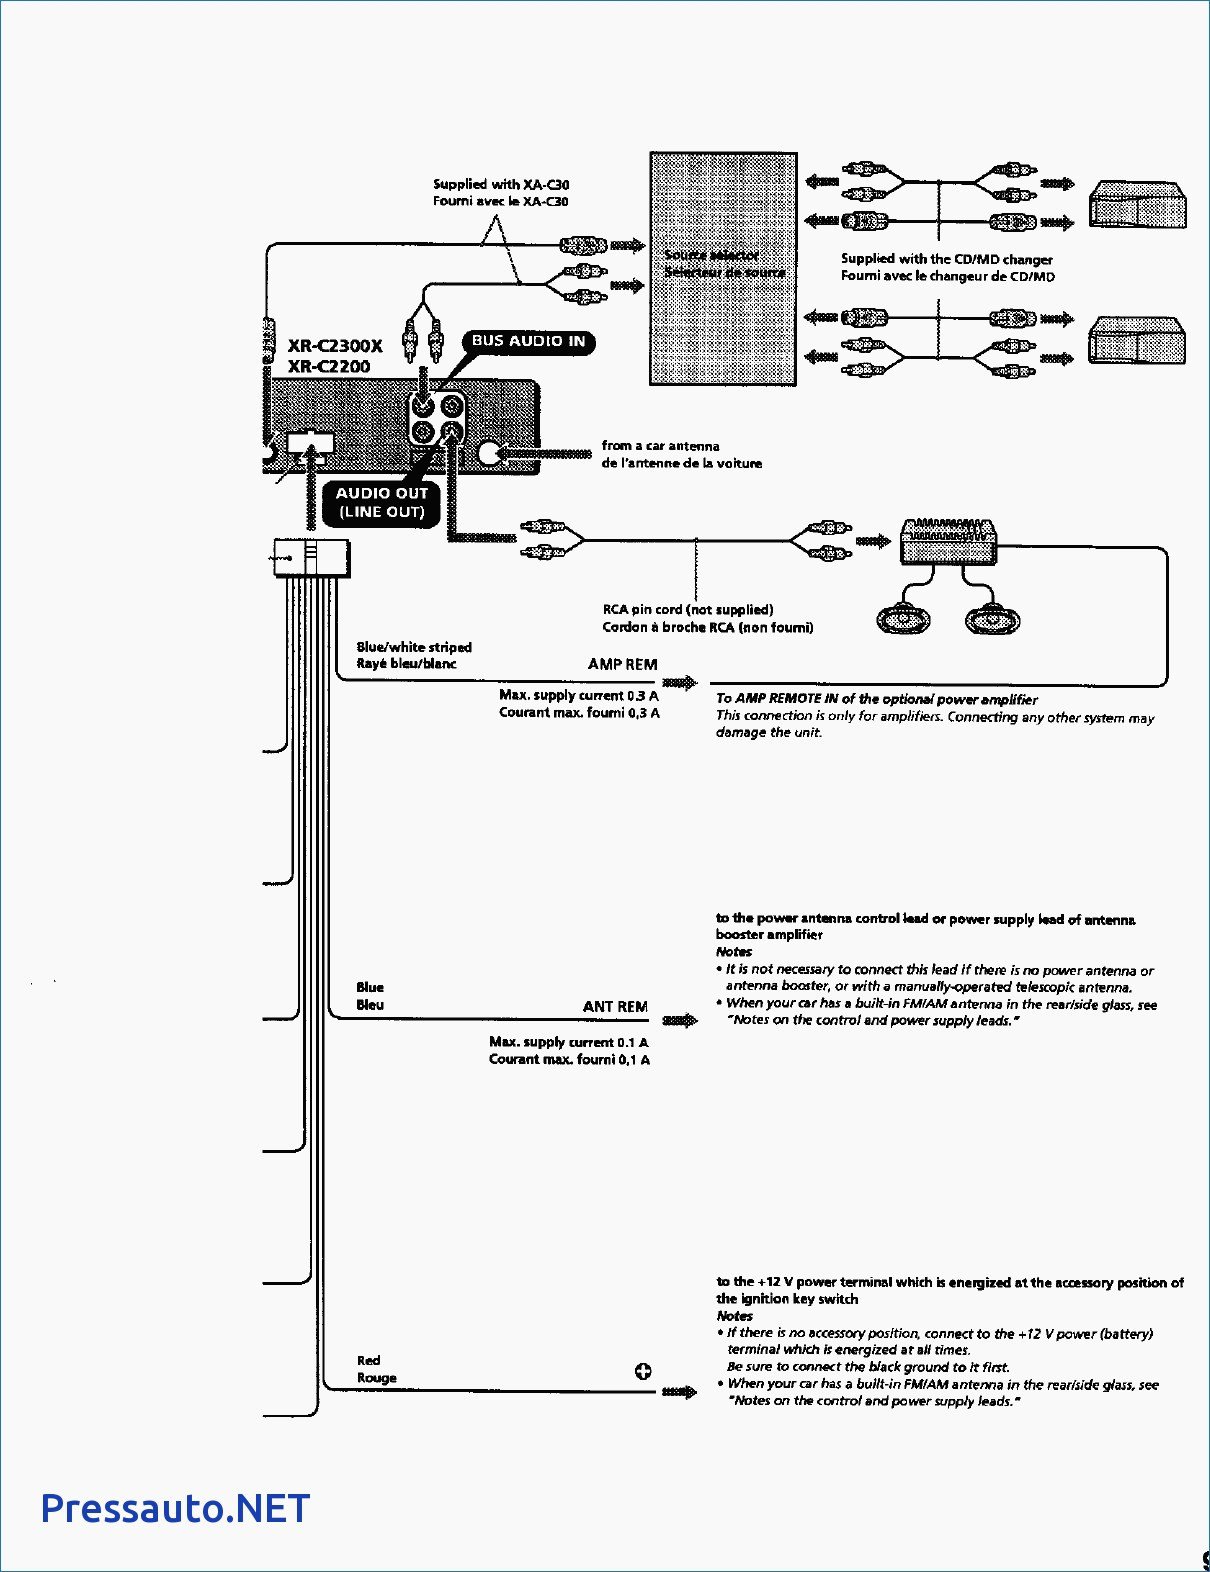 sony 52wx4 wire diagram wiring diagram database sony xplod amp wiring diagram sony 52wx4 wire diagram wiring diagram sony headphones extension cords sony 52wx4 wire diagram